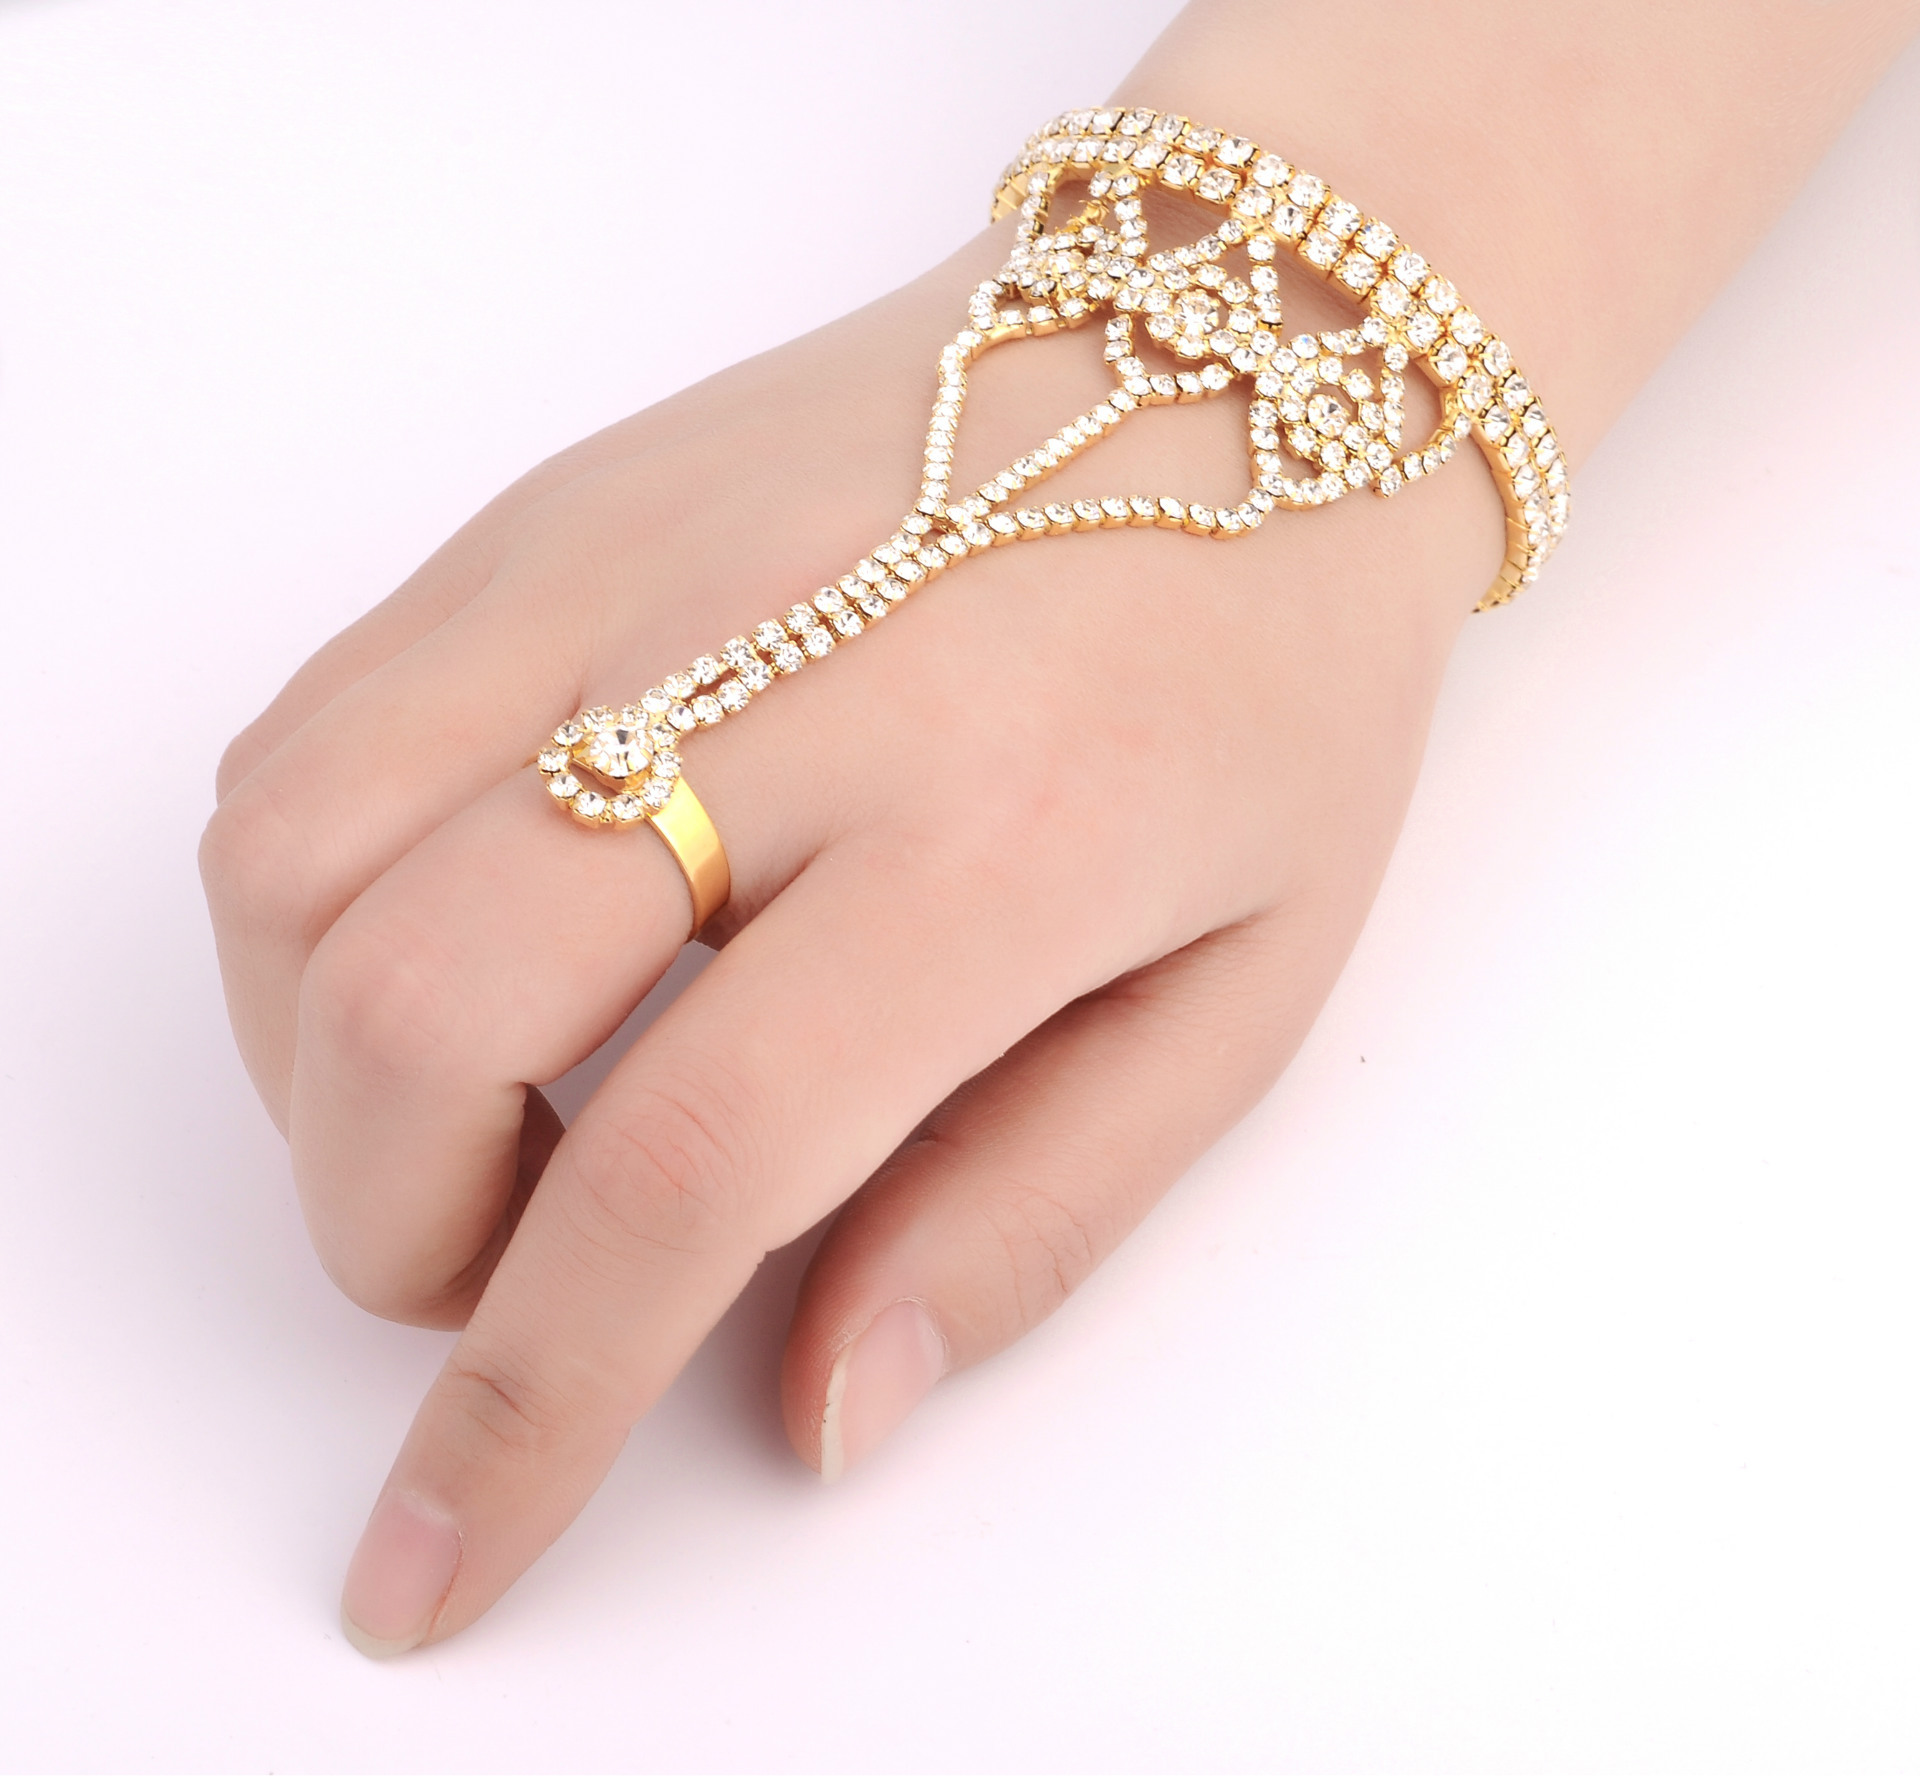 Simple crystalBracelet (Golden White Diamond-k9)NHIM0721-Golden White Diamond-k9